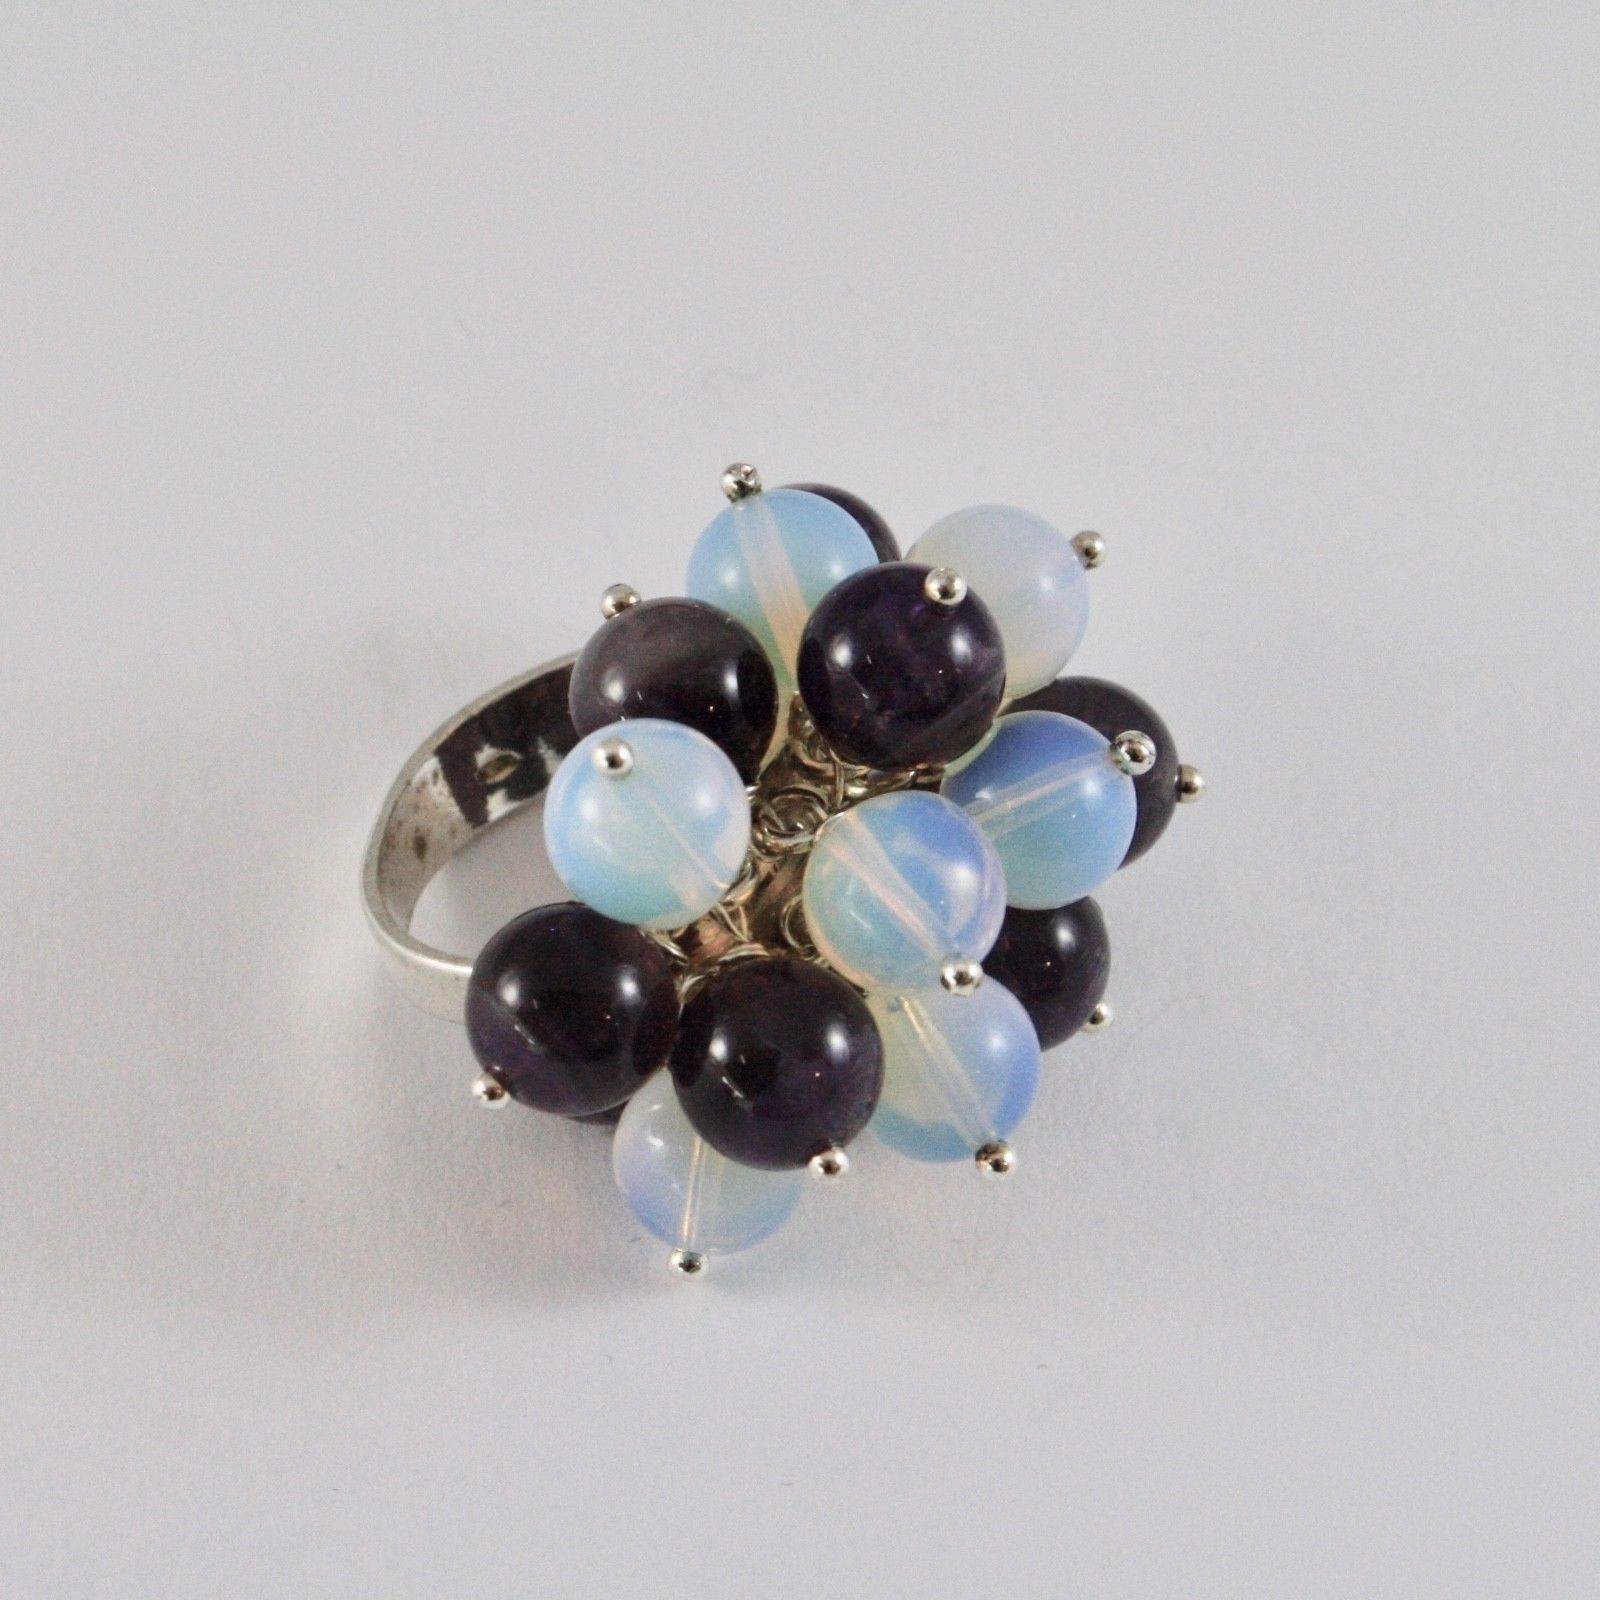 925 SILVER RING CLUSTER MUNITIONS WITH AMETHYST AND OPAL 8 MM SIZE ADJUSTABLE